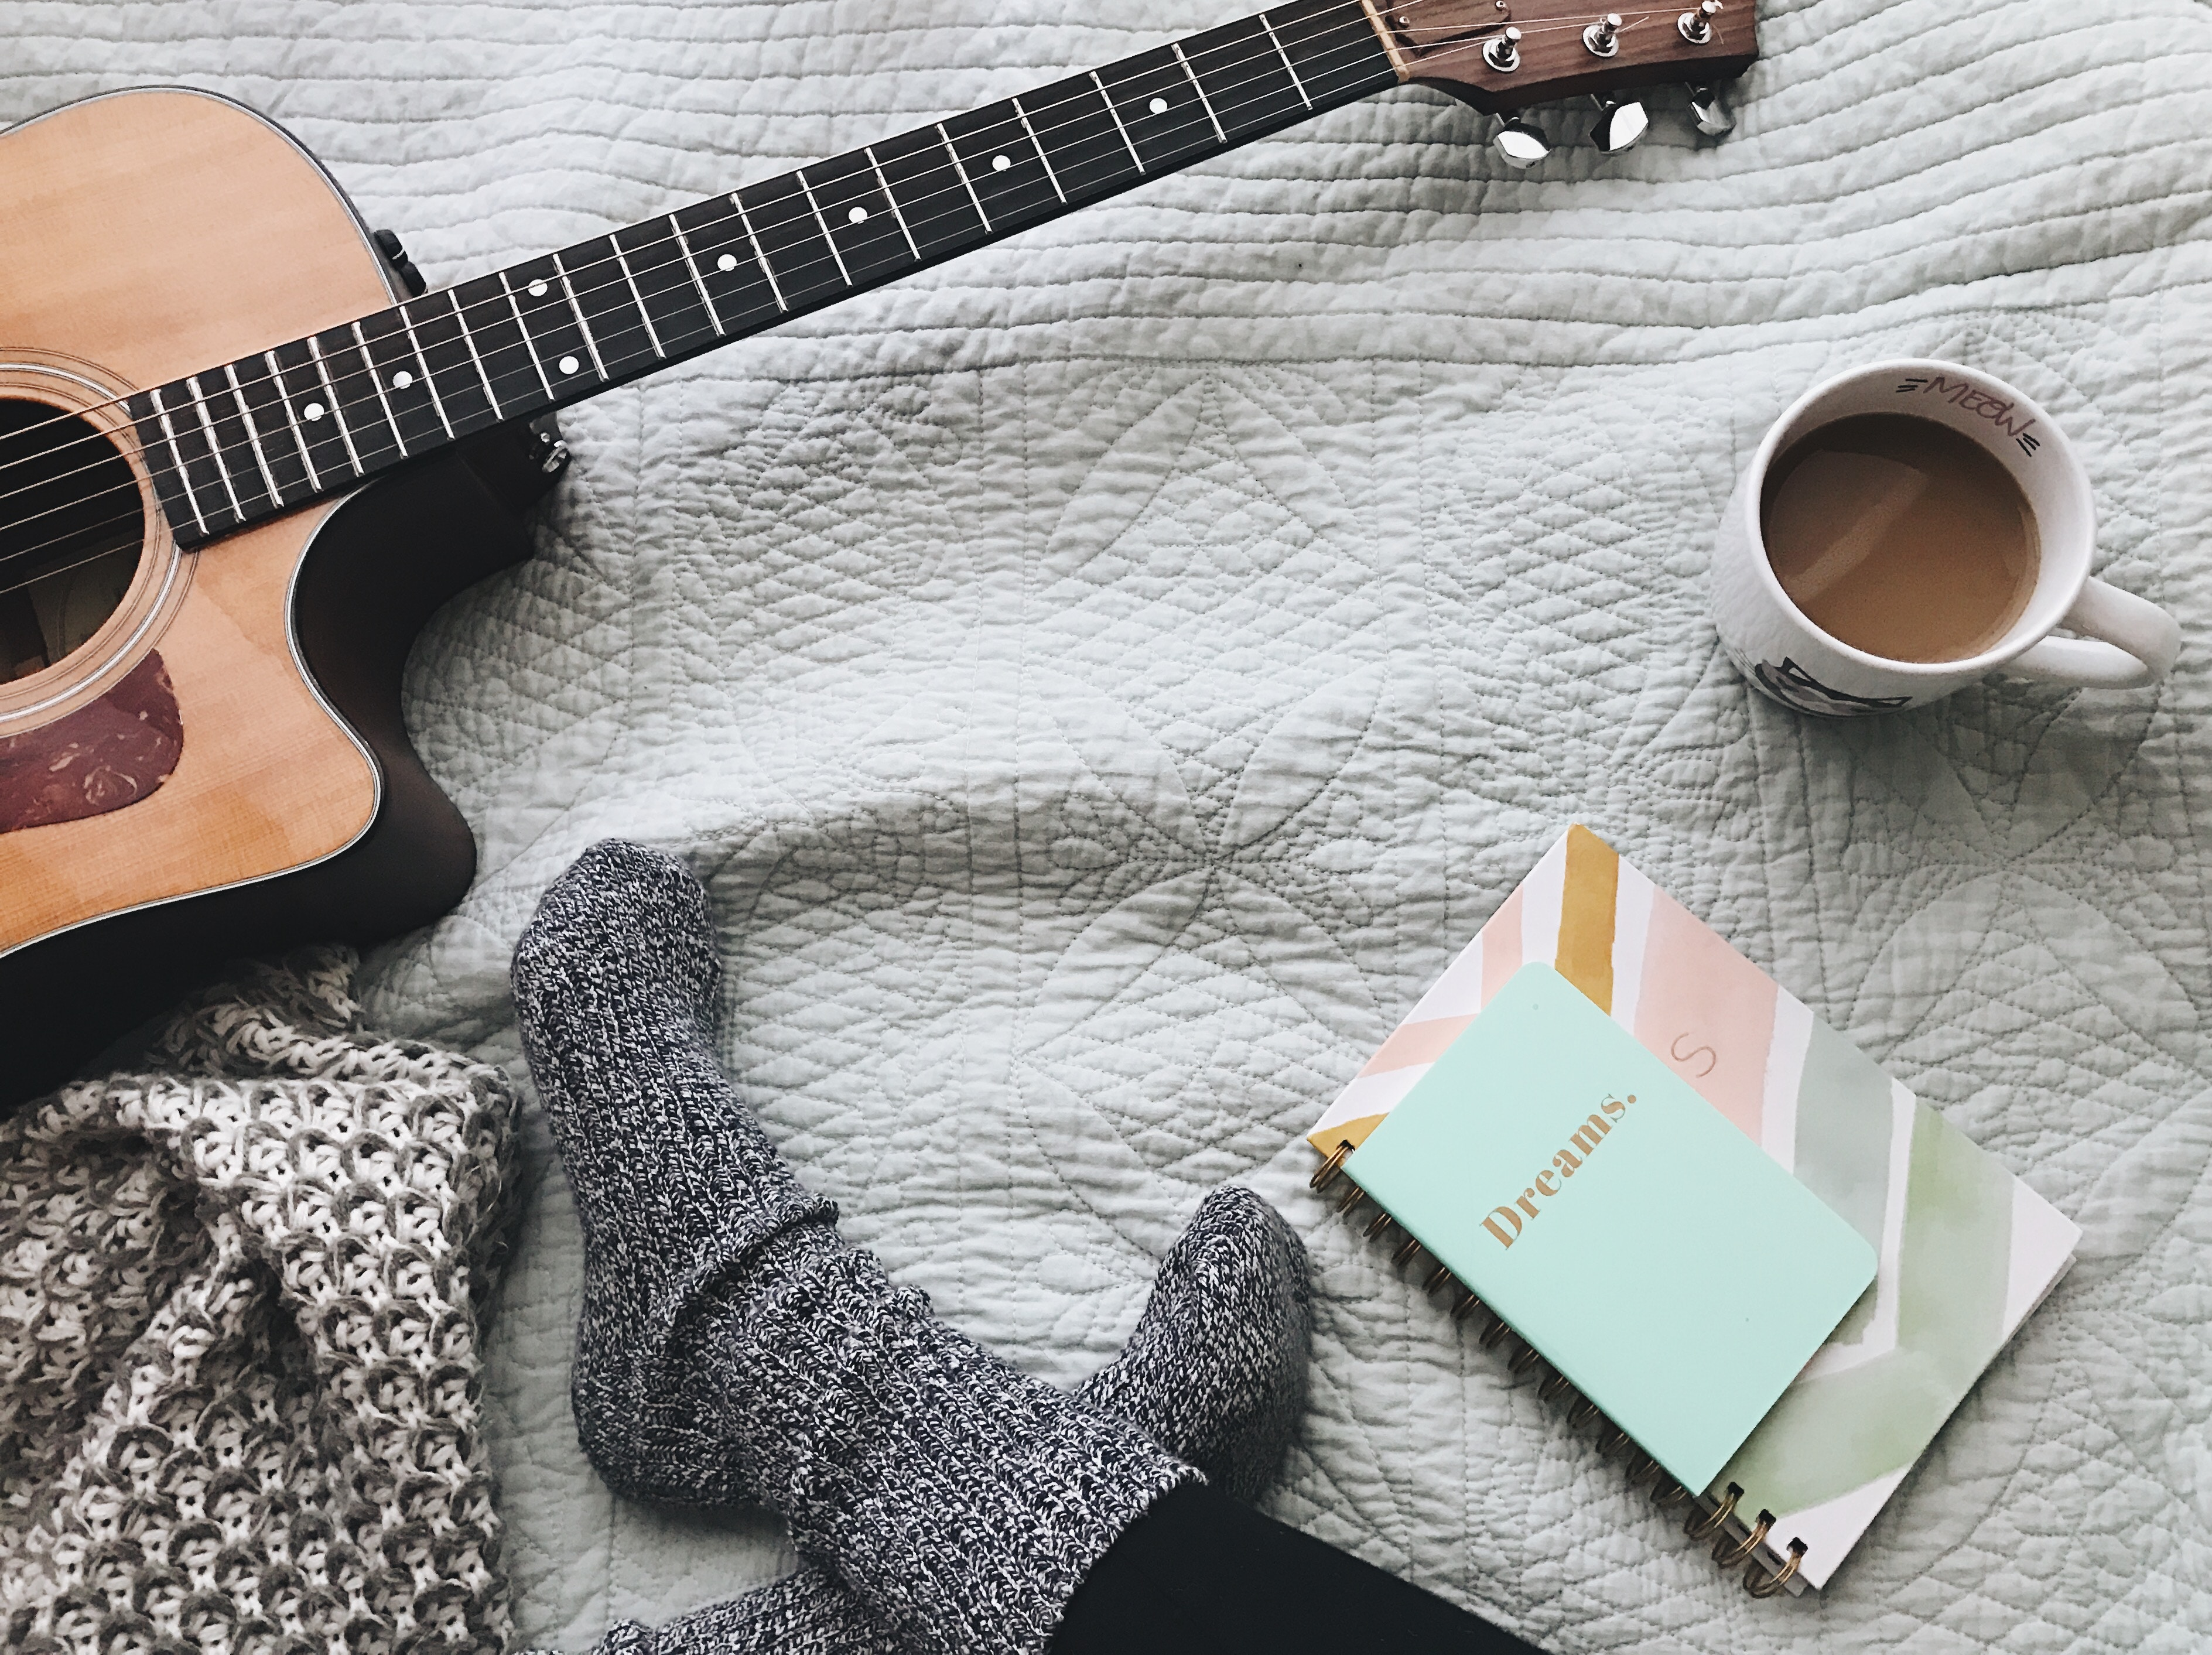 comfortable environment - guitar, coffee, notebook